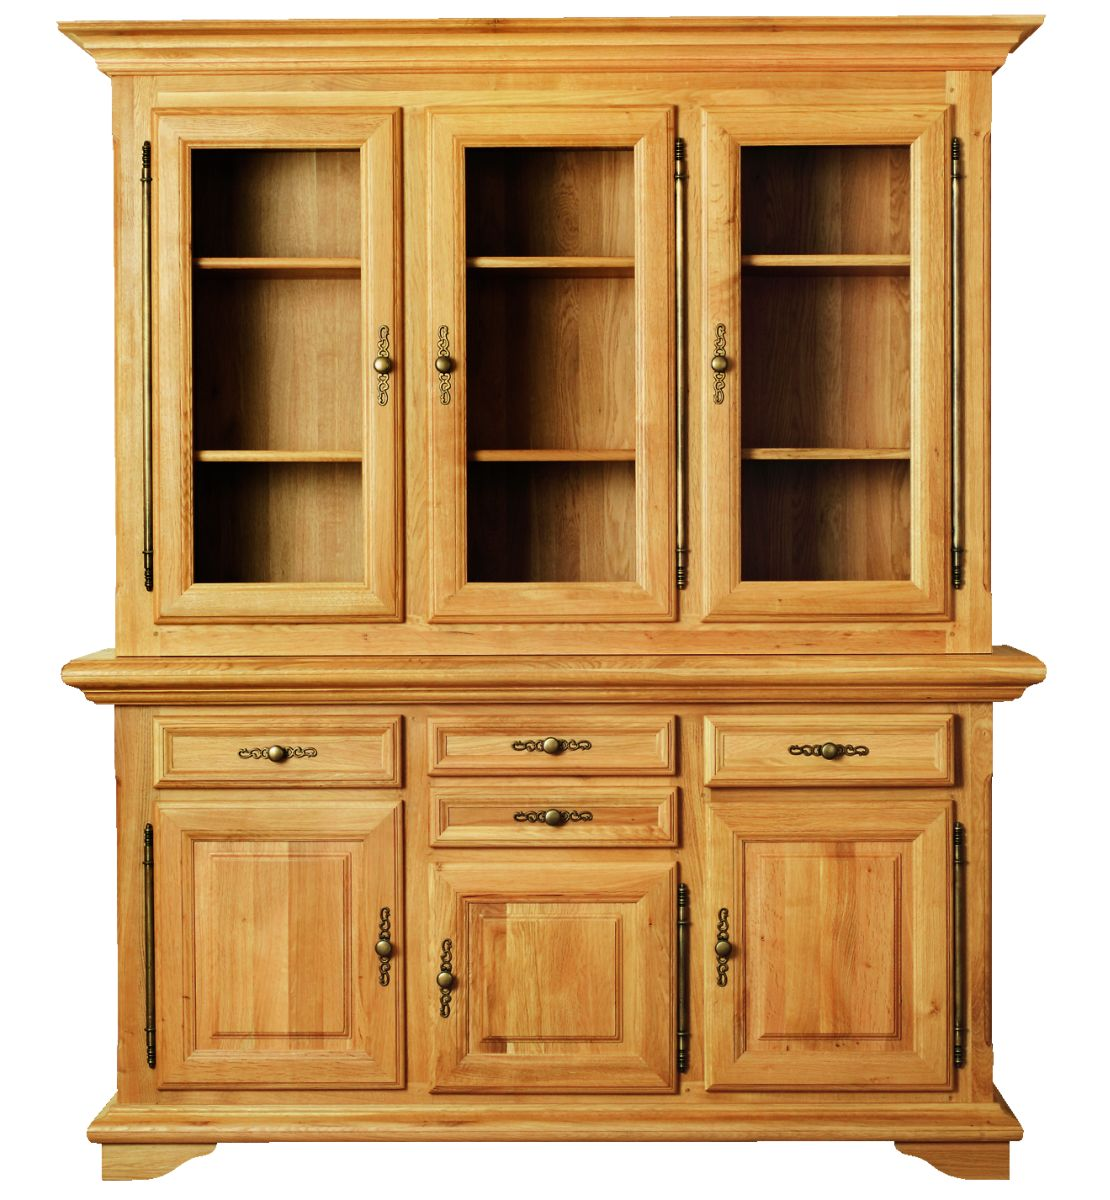 Solid Oak Cabinet Top, 3 Doors